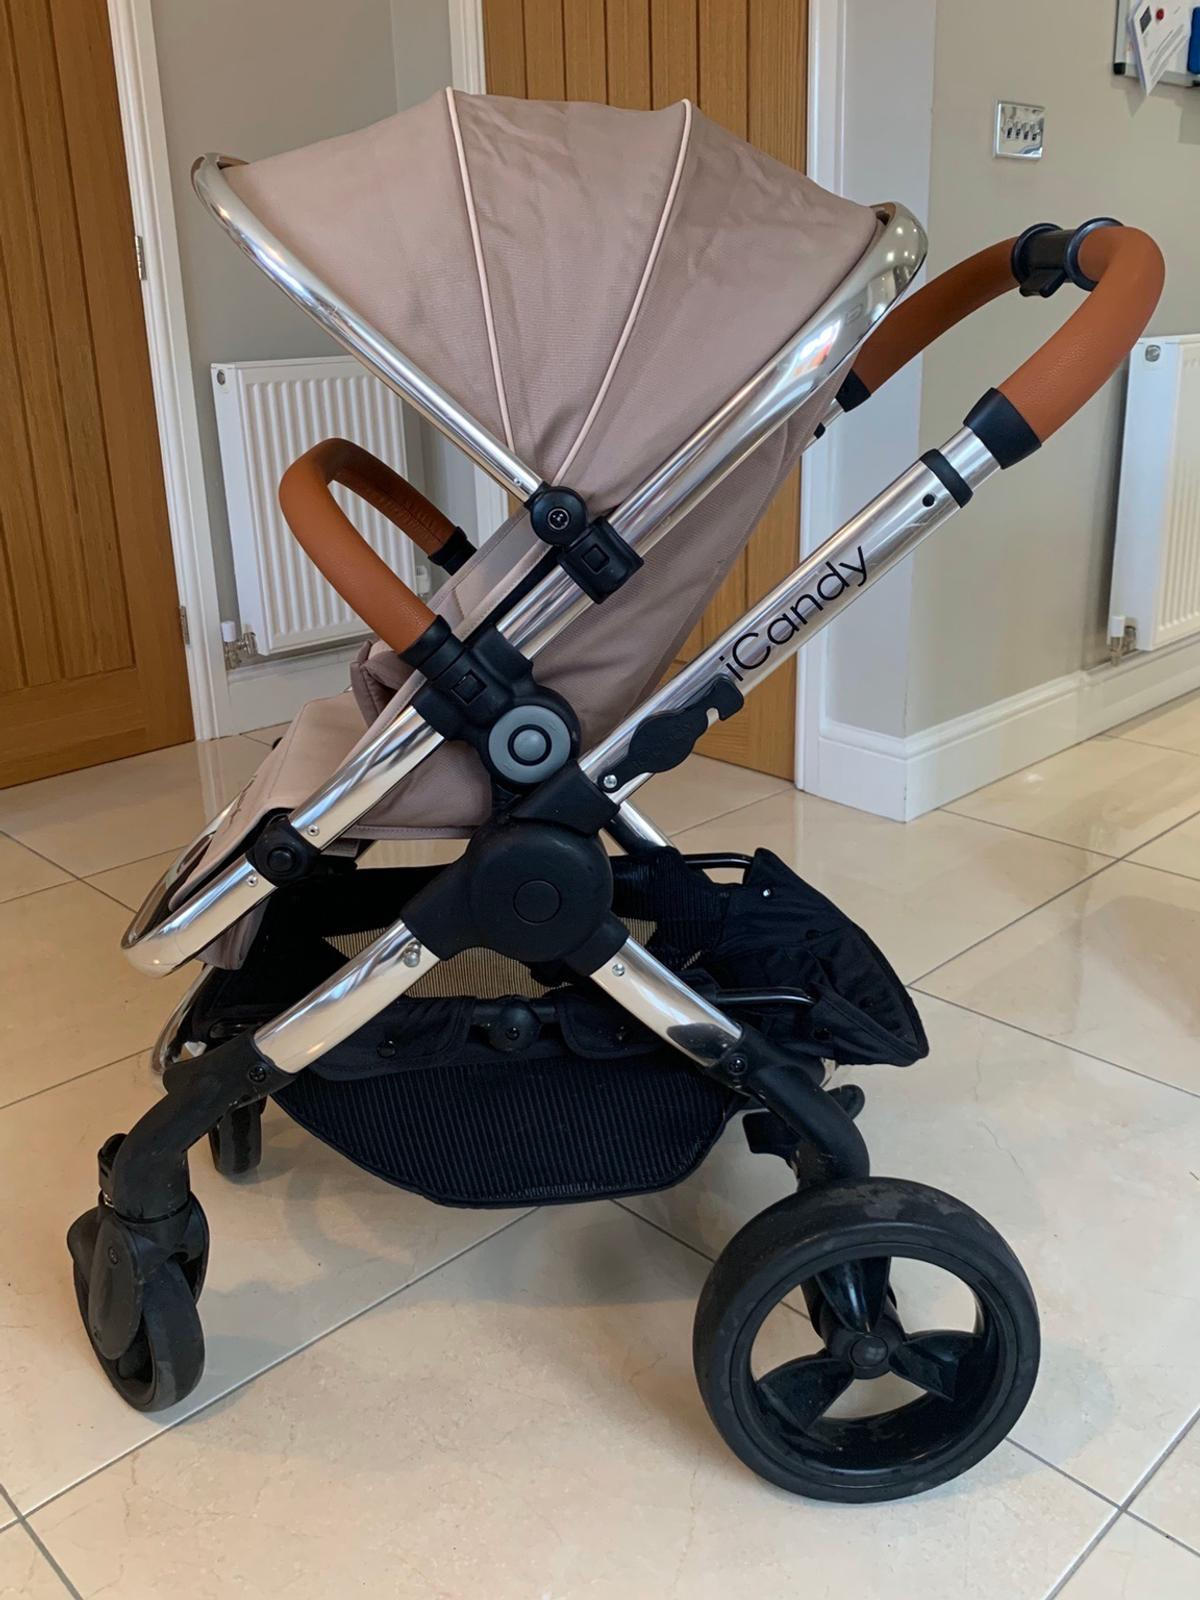 Excellent condition. Warranty registered. Complete travel system with just the odd scratch from normal wear and tear. Updated buckle system and extra seat liner for the pushchair. Comes complete with footmuff, seat liner, adapters, rain covers, and cup holder with connector for either parasol or cup holder. Will consider delivery - please contact for details